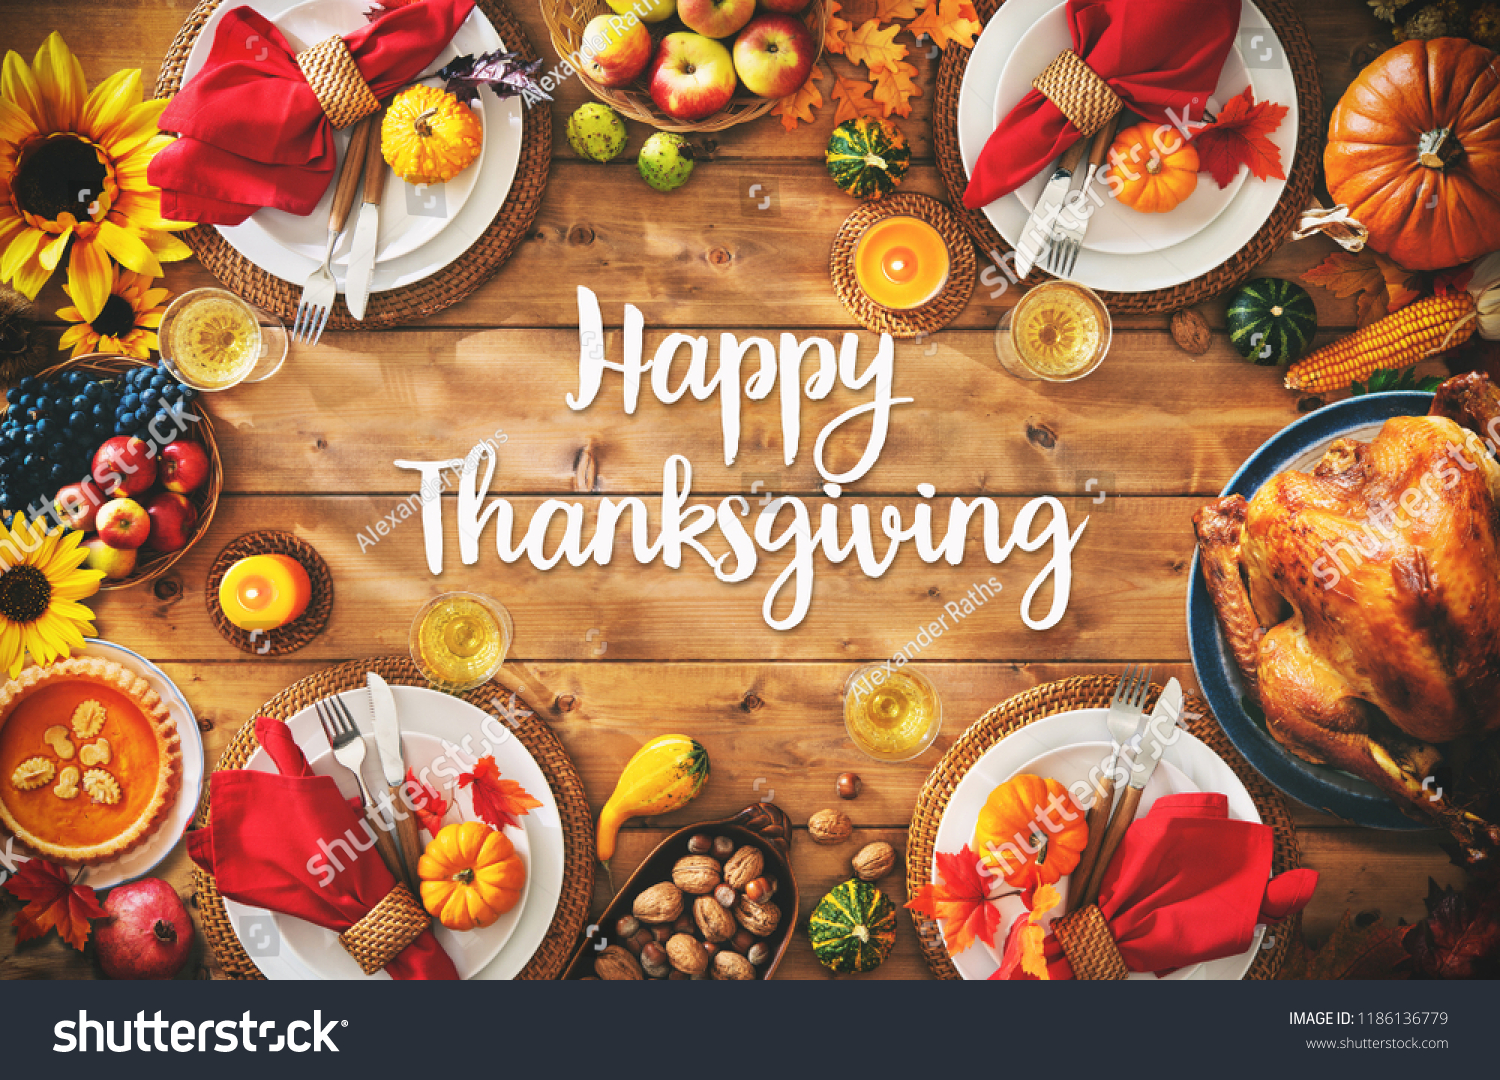 Thanksgiving celebration traditional dinner setting meal concept with Happy Thanksgiving text #1186136779